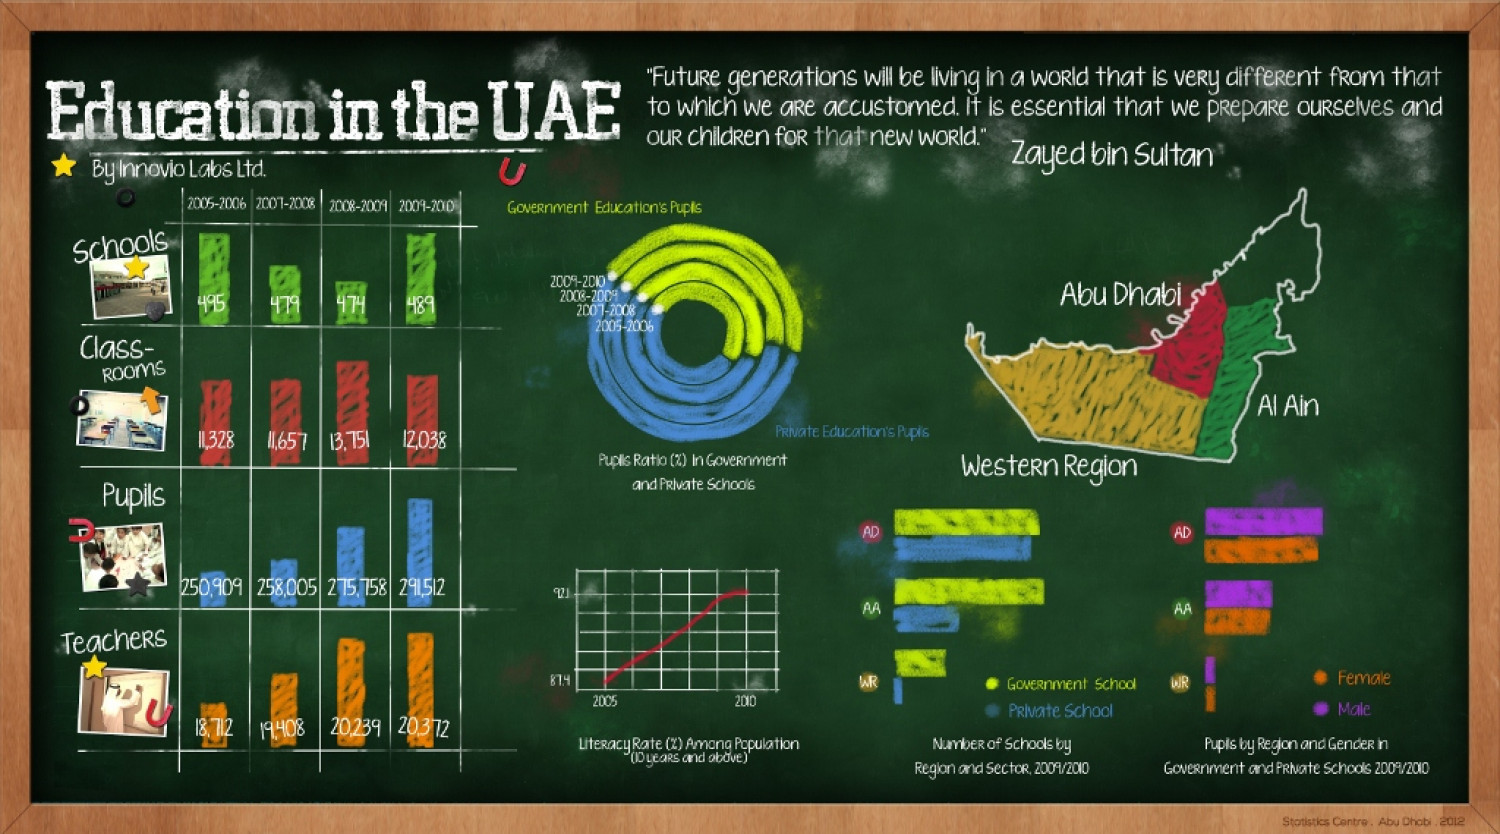 Education in the UAE Infographic